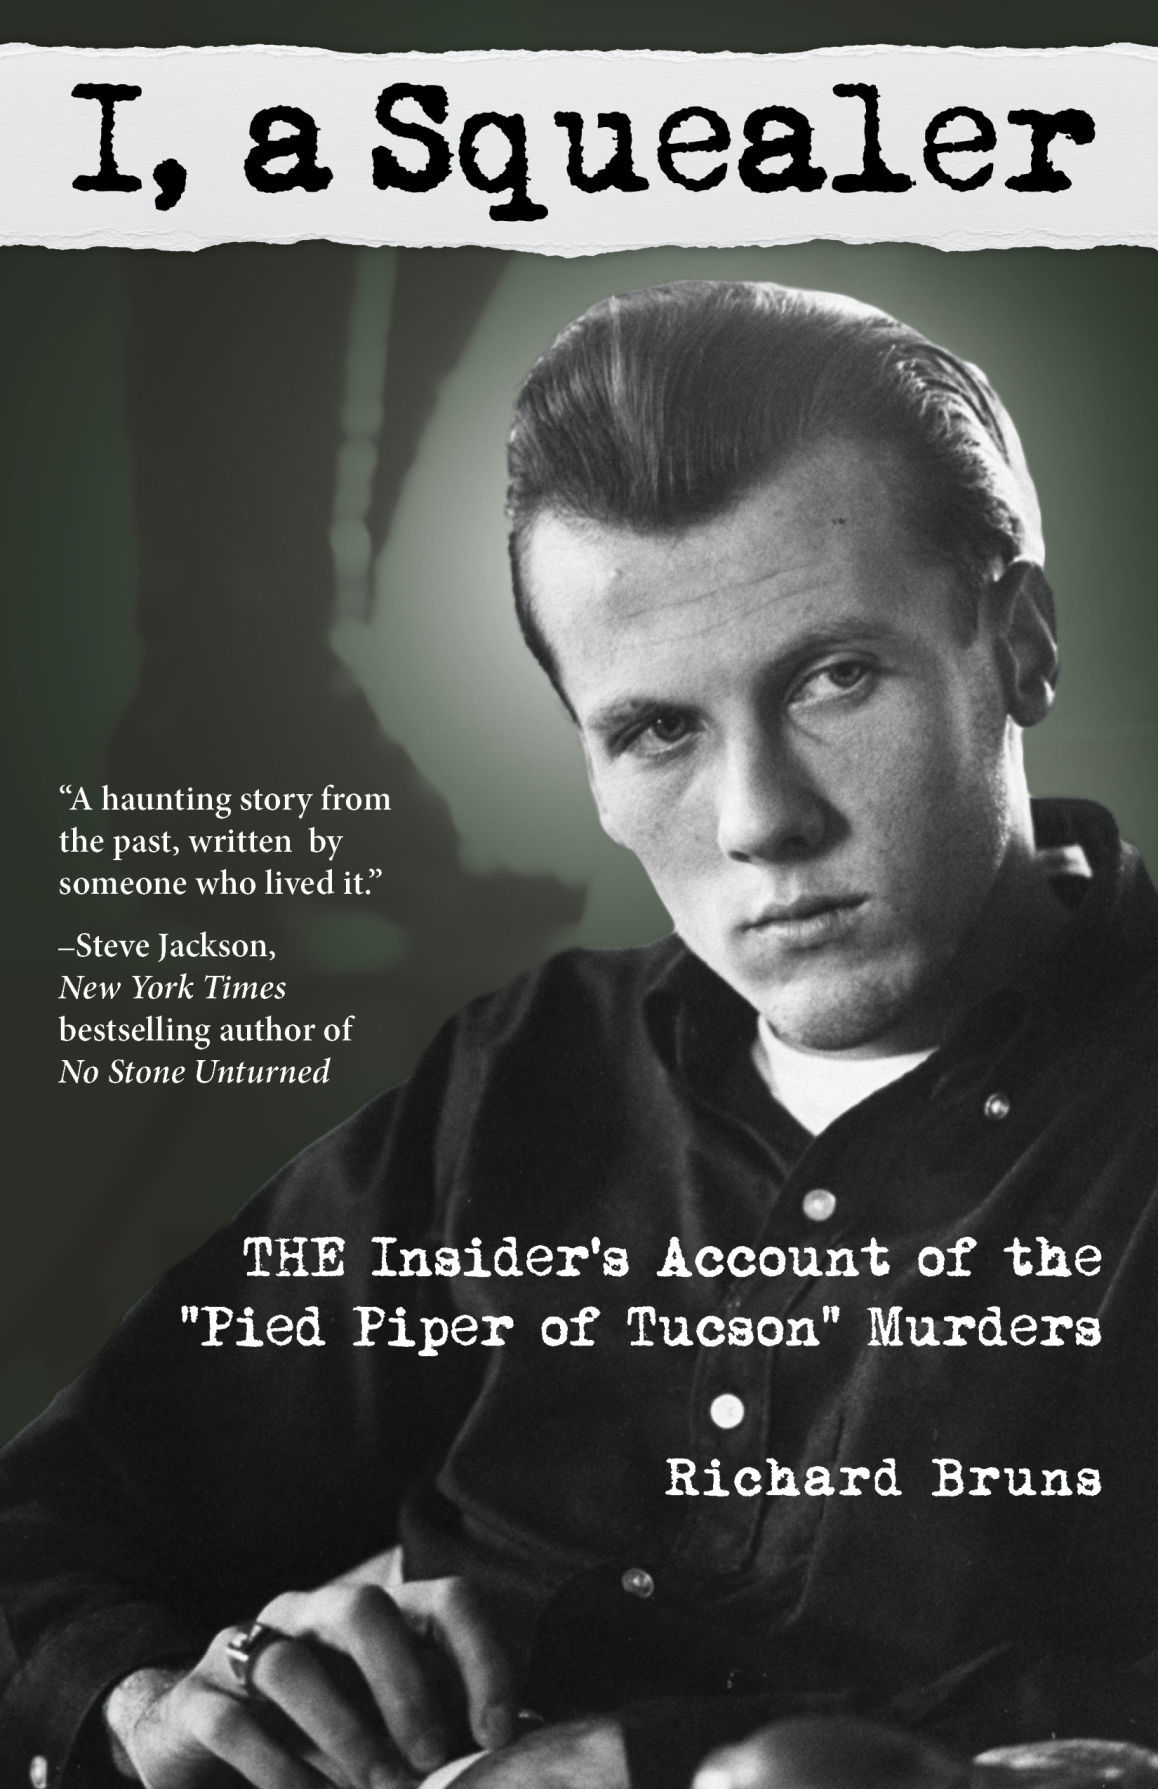 Author sets the record straight, telling the story of a murderer